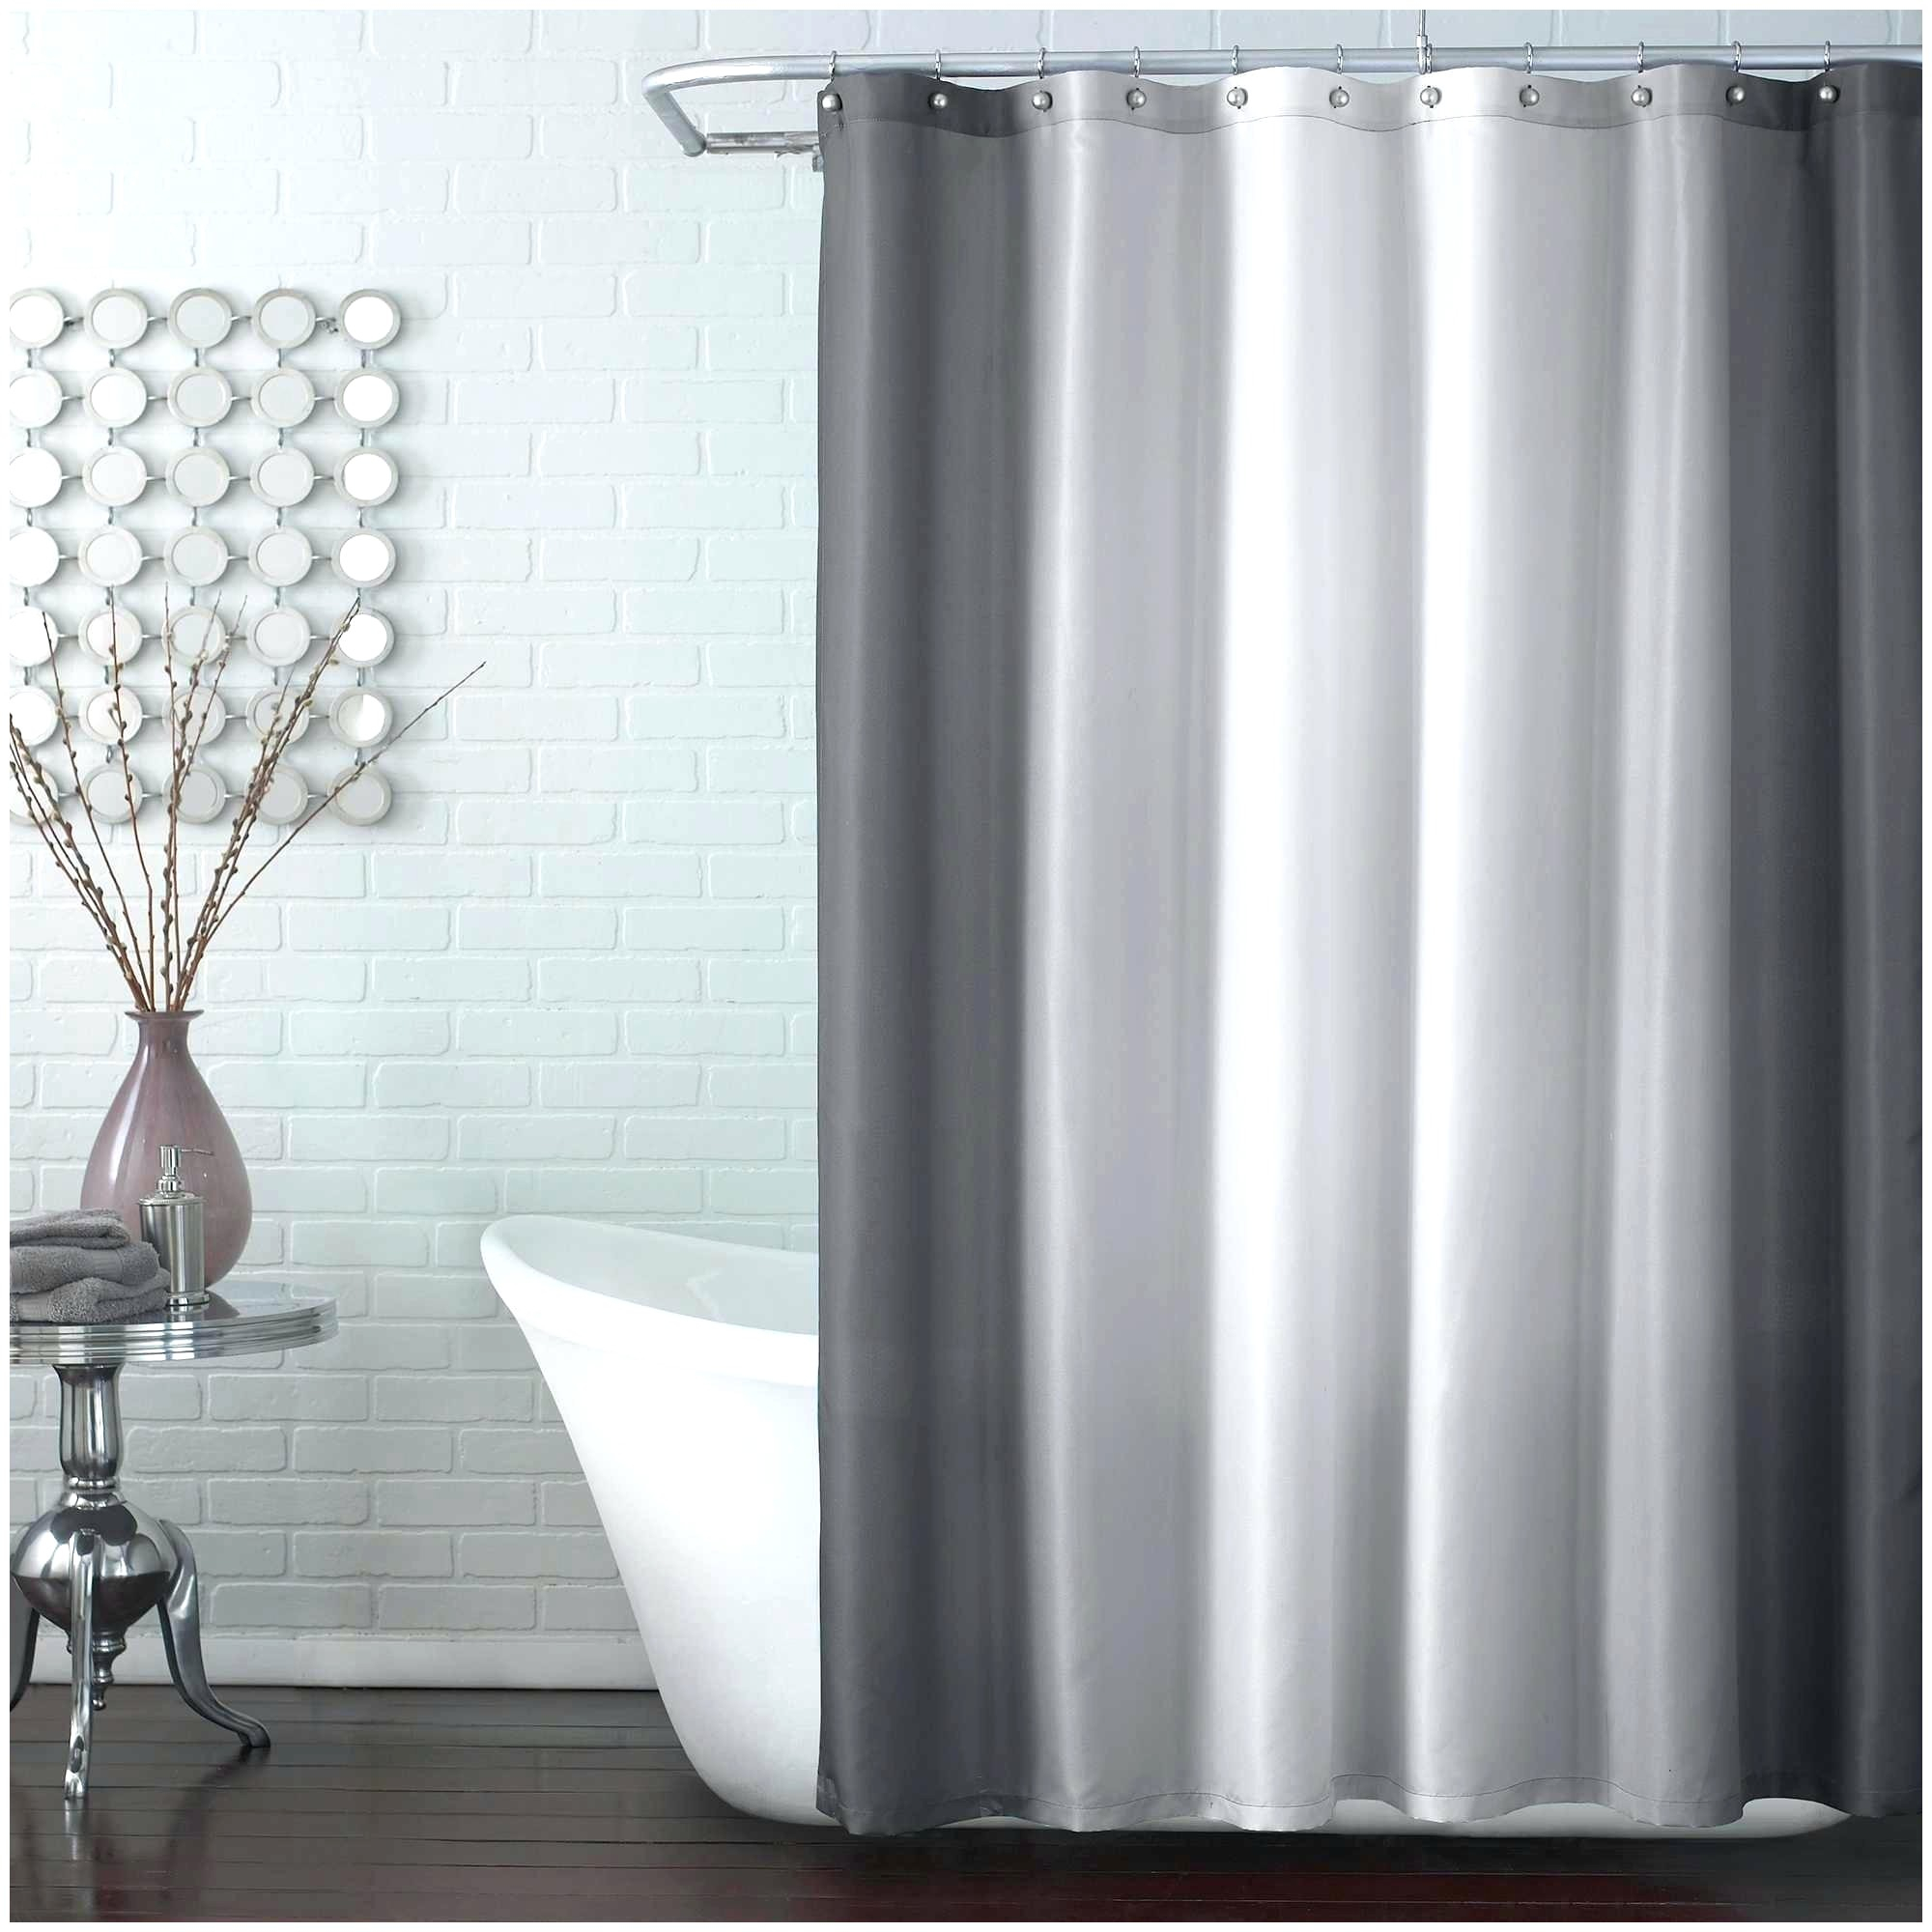 72 X 78 Shower Curtain Liner Shower Curtains Design throughout size 2000 X 2000